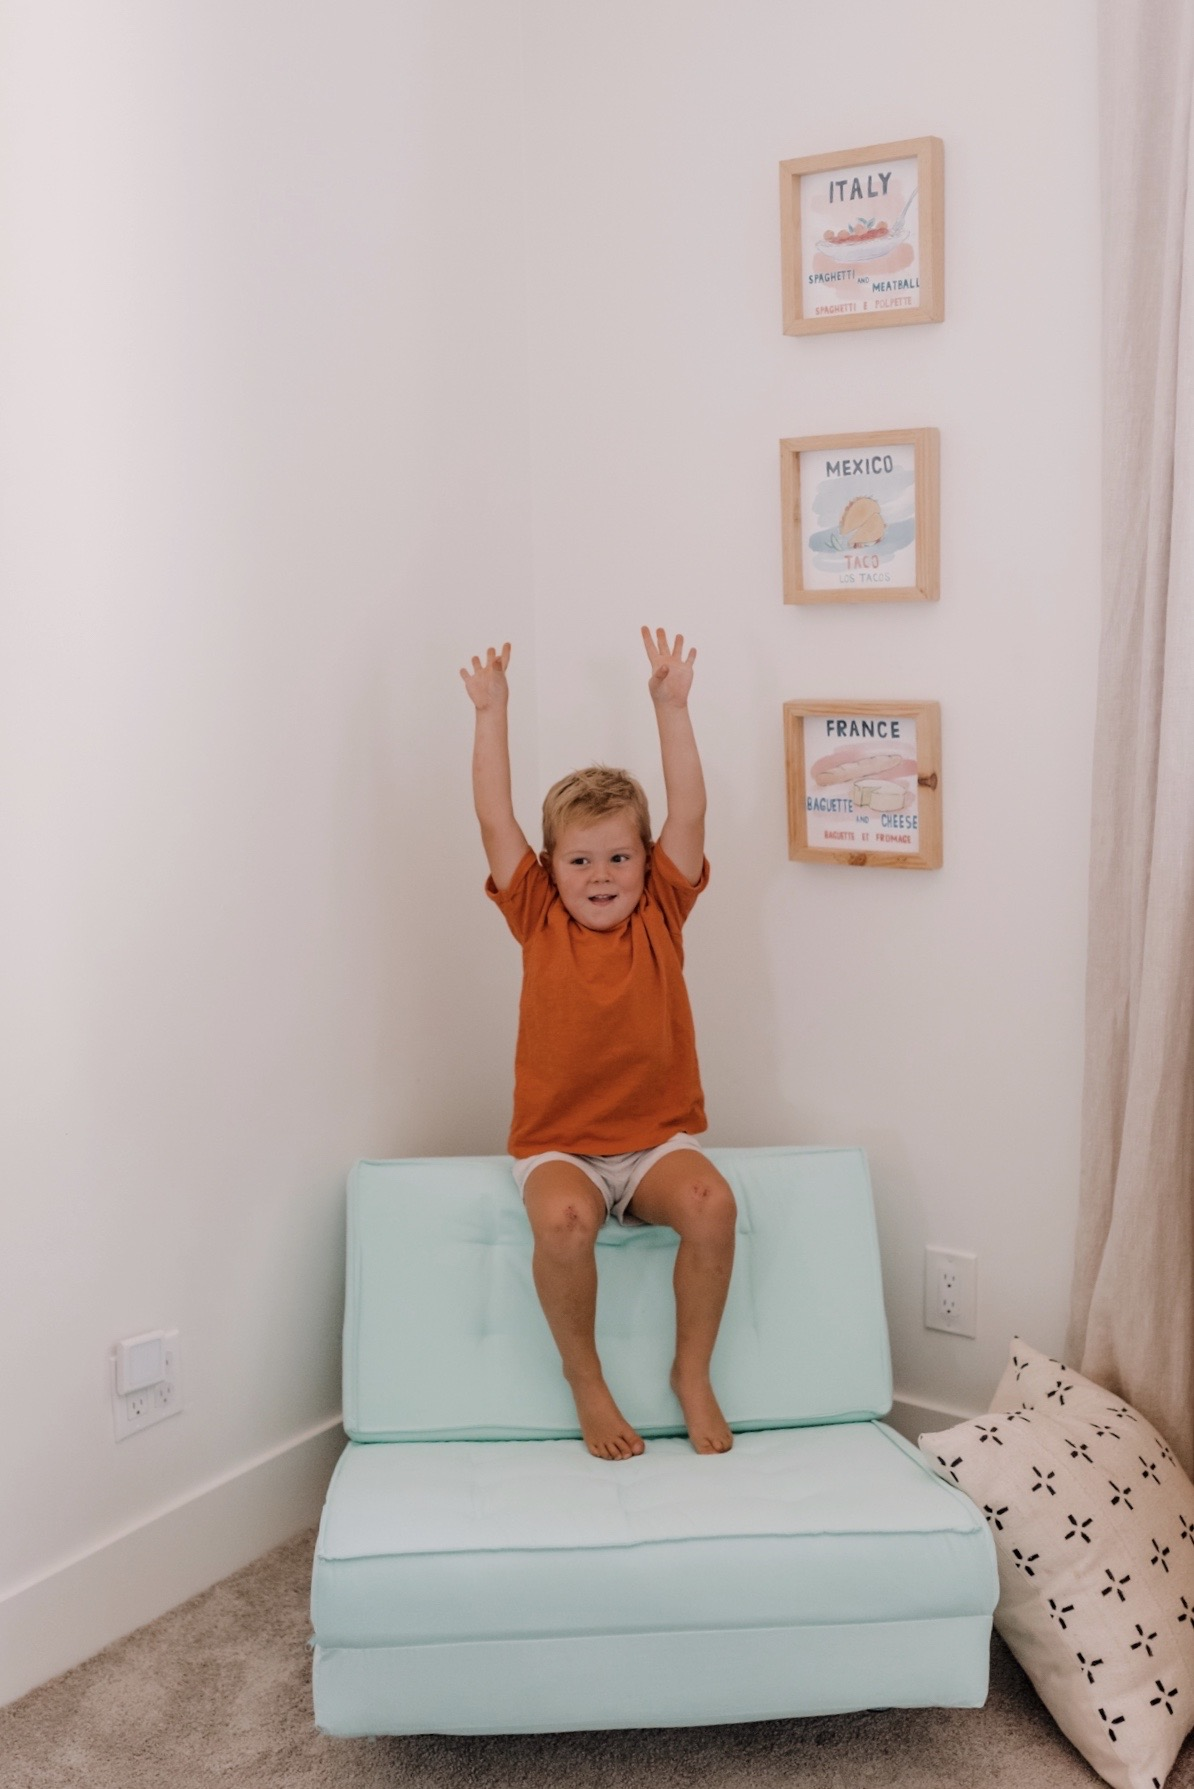 Walmart Decor by popular San Diego life and style blog, Navy Grace: image of a young boy siting on a blue chair next to some framed world country prints.